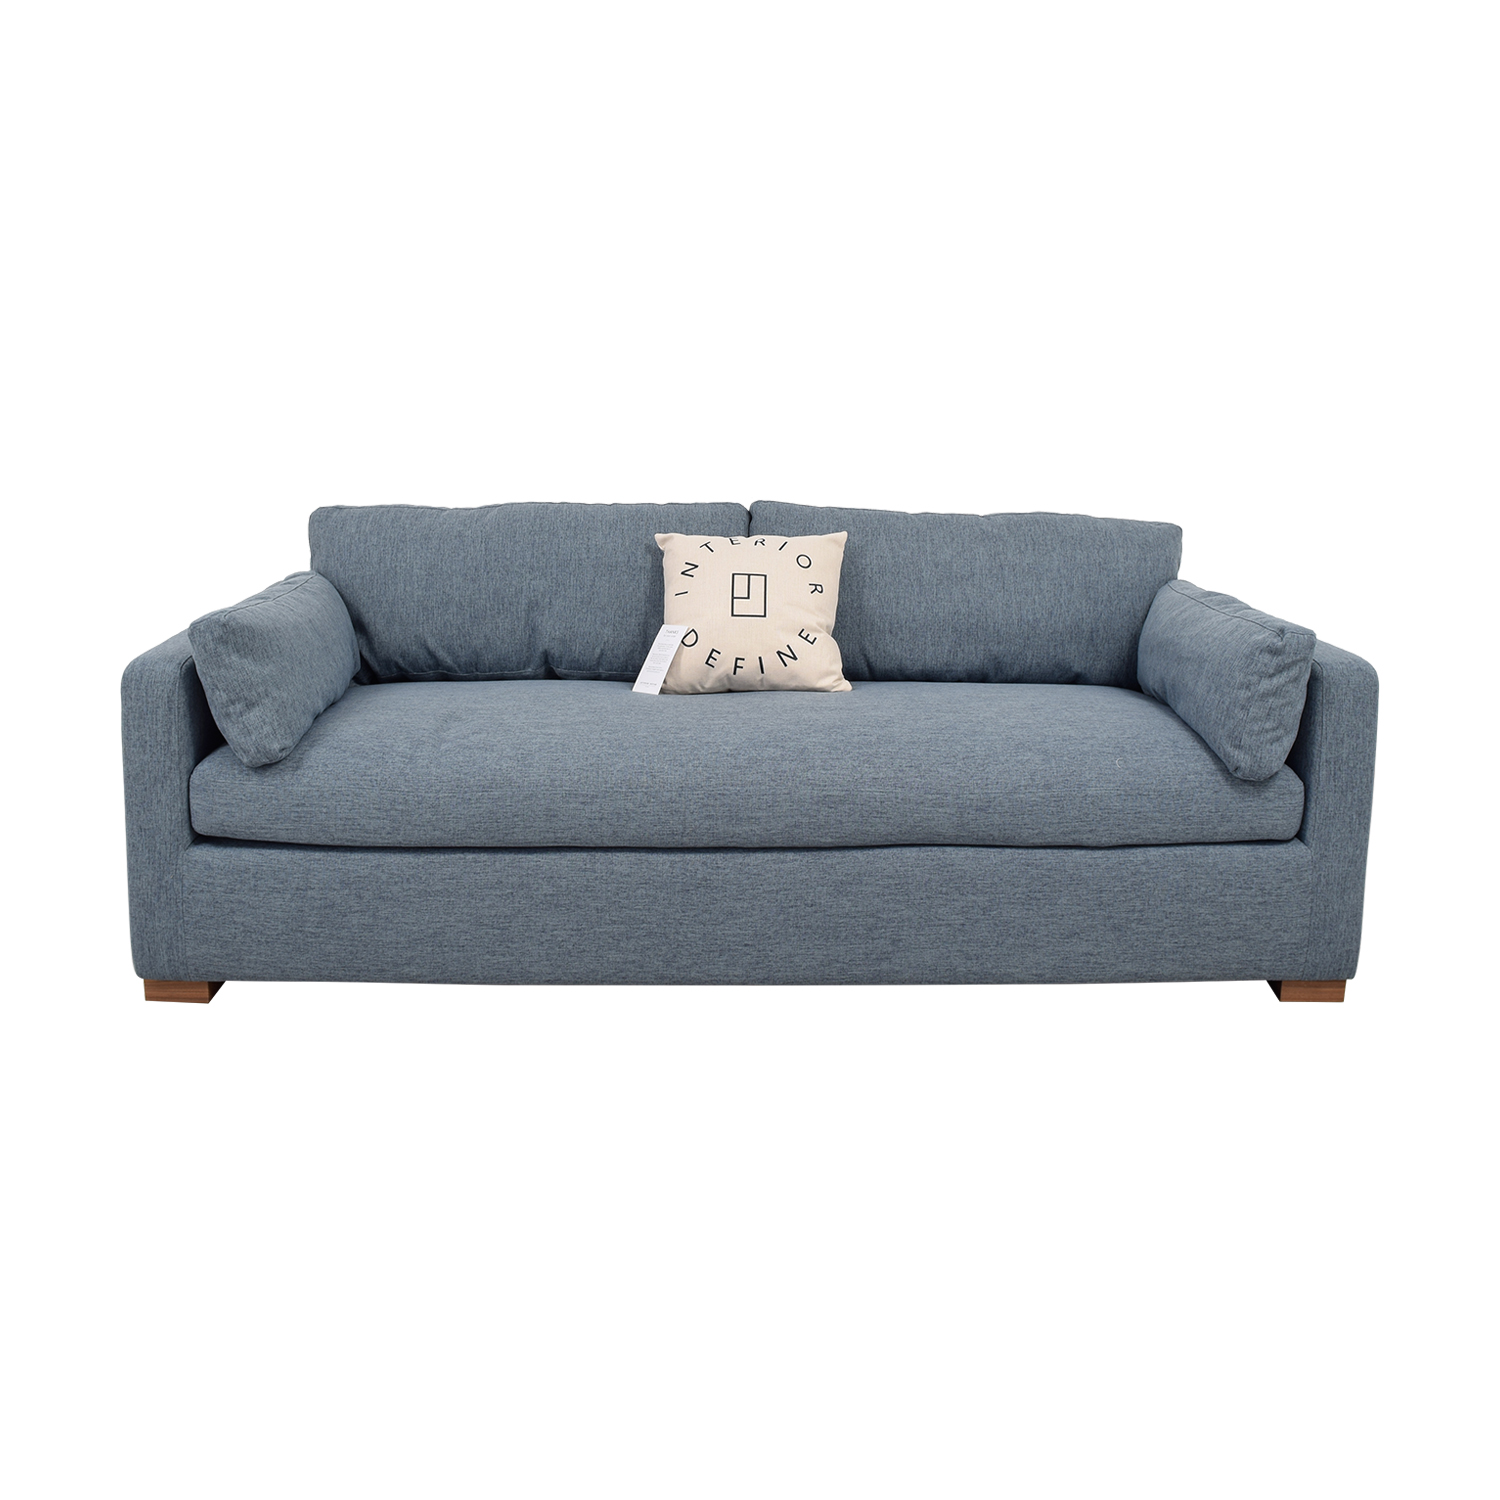 buy Charly Blue Single Cushion Sofa